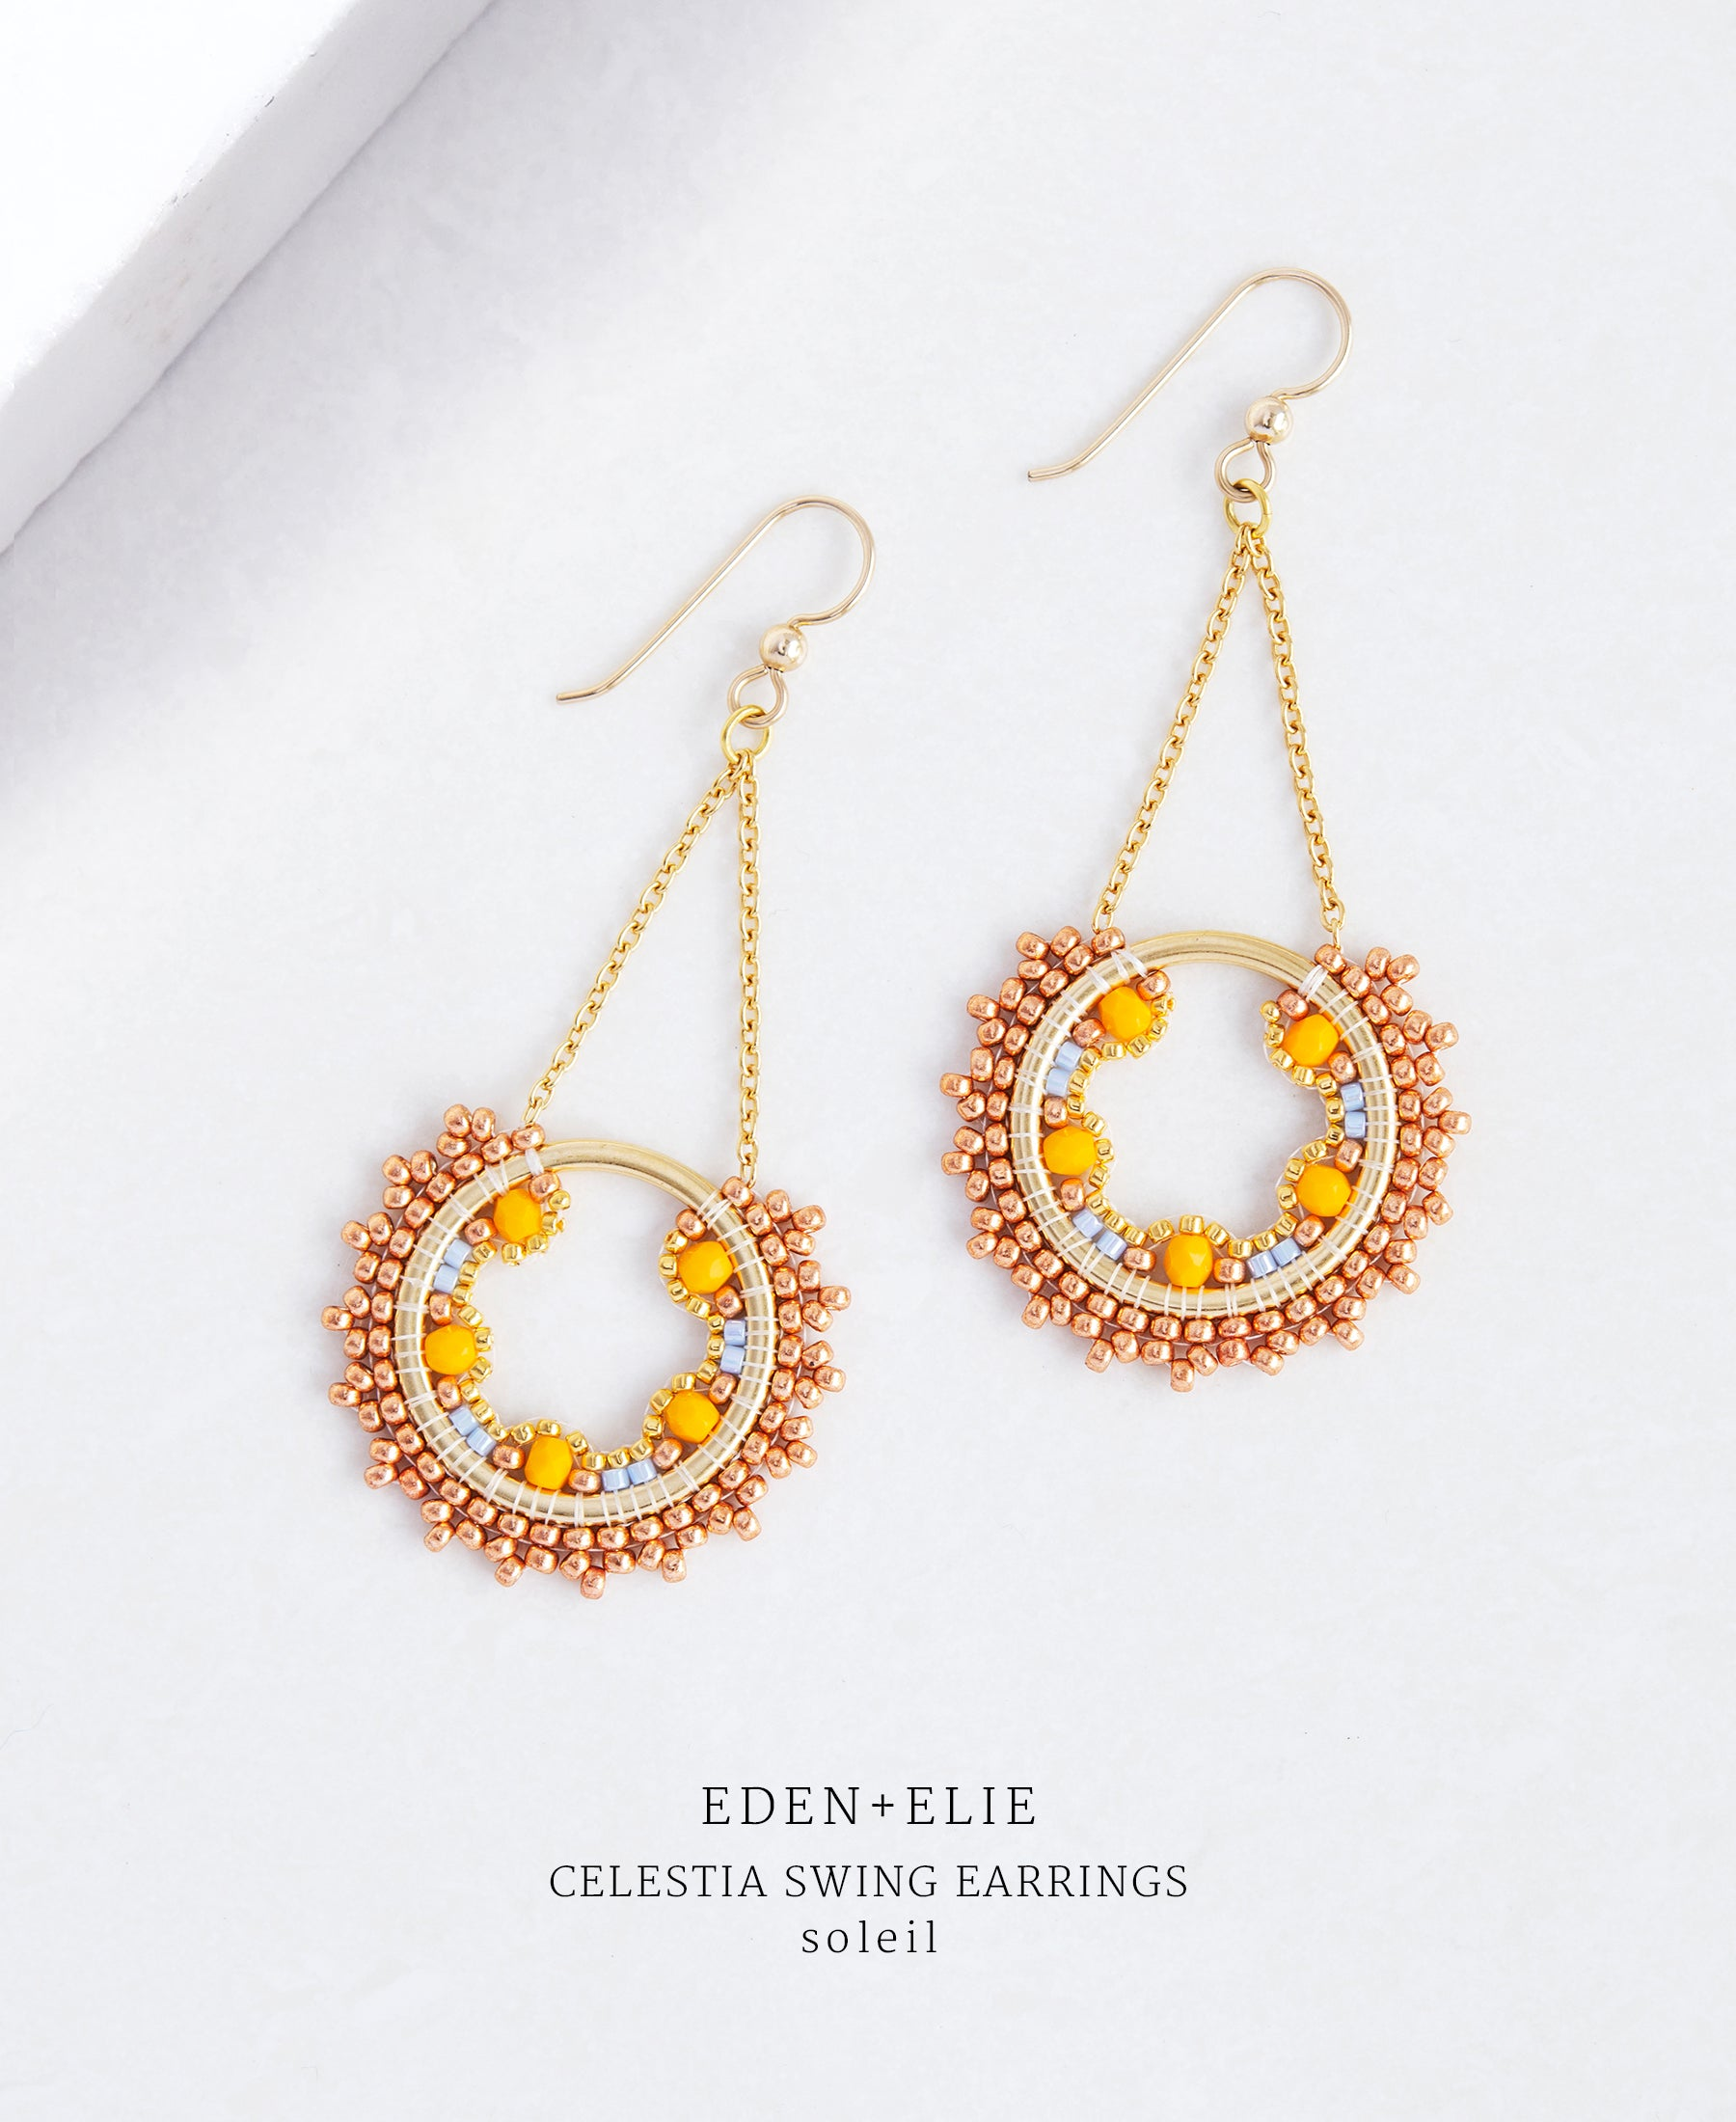 EDEN + ELIE Celestia swing earrings - soleil orange